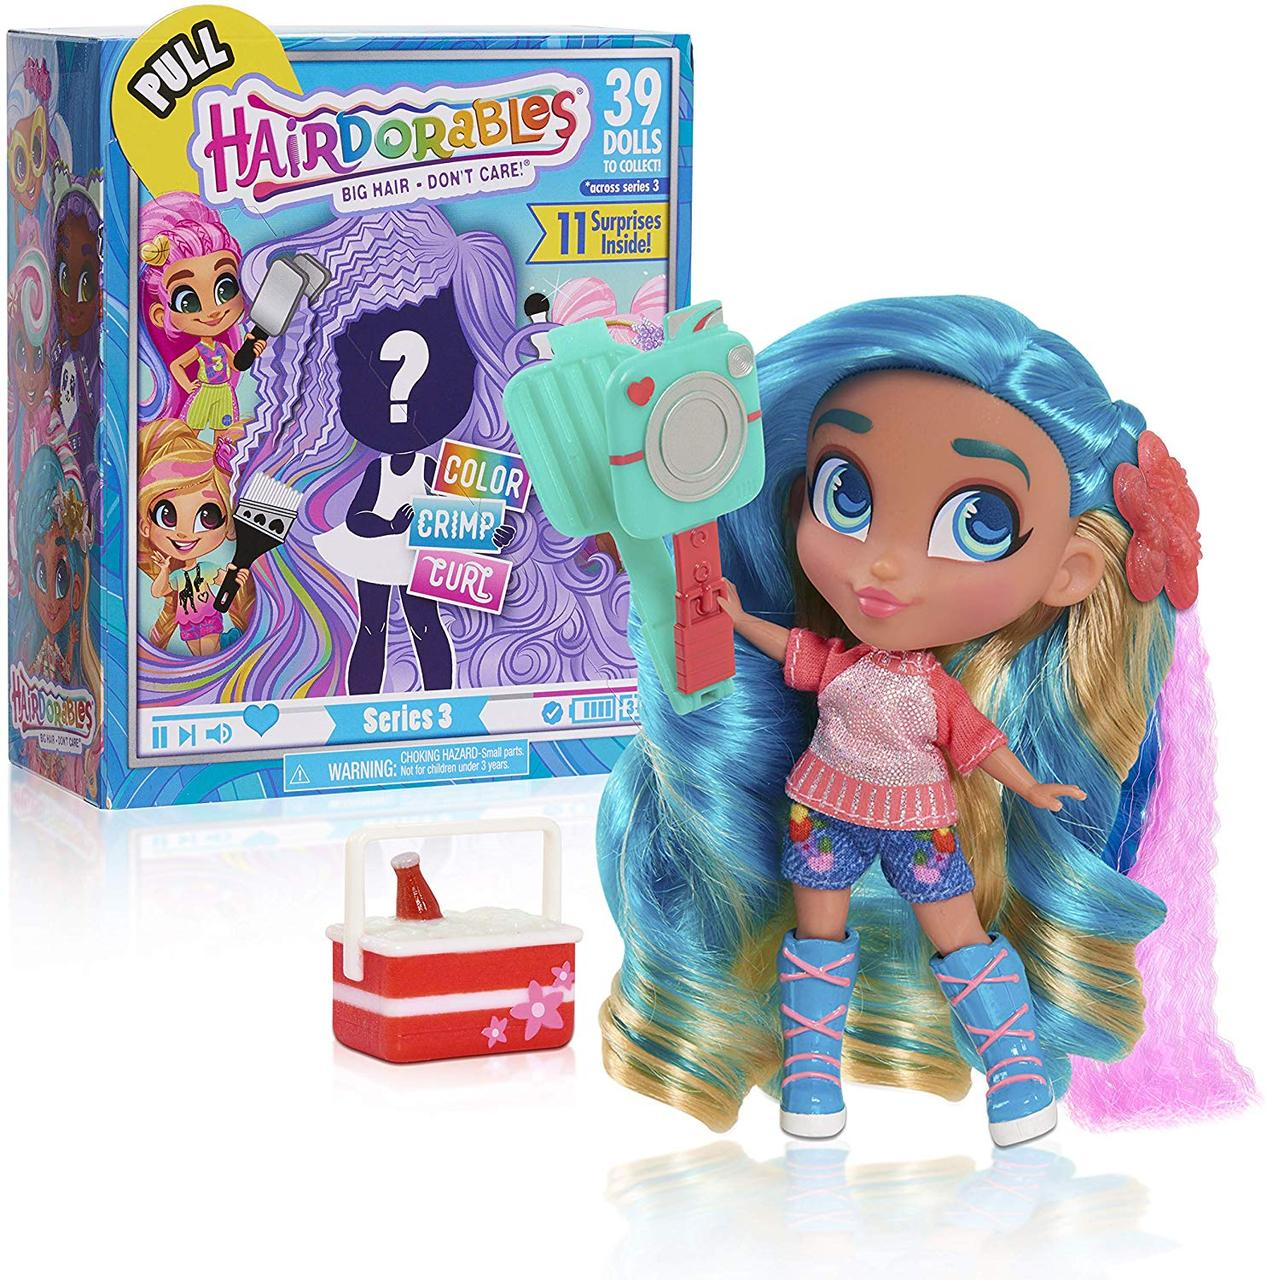 Куколки Хейрдораблес серия 3 / Hairdorables ‐ Collectible Surprise Dolls and Accessories Series 3